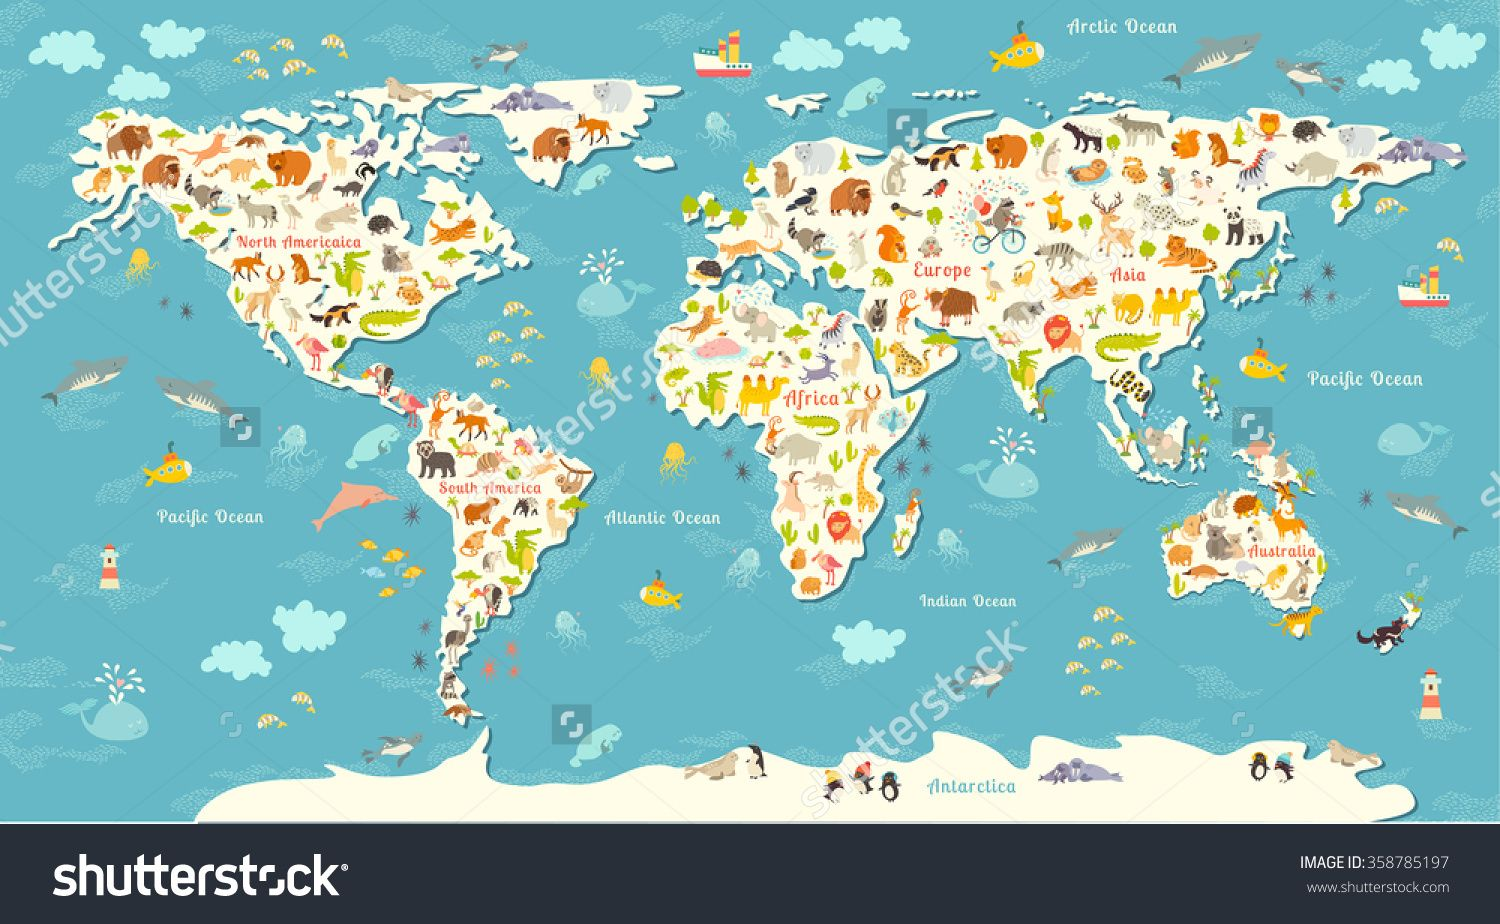 Animals world map beautiful cheerful colorful vector illustration animals world map beautiful cheerful colorful vector illustration for children kids inscription of gumiabroncs Image collections